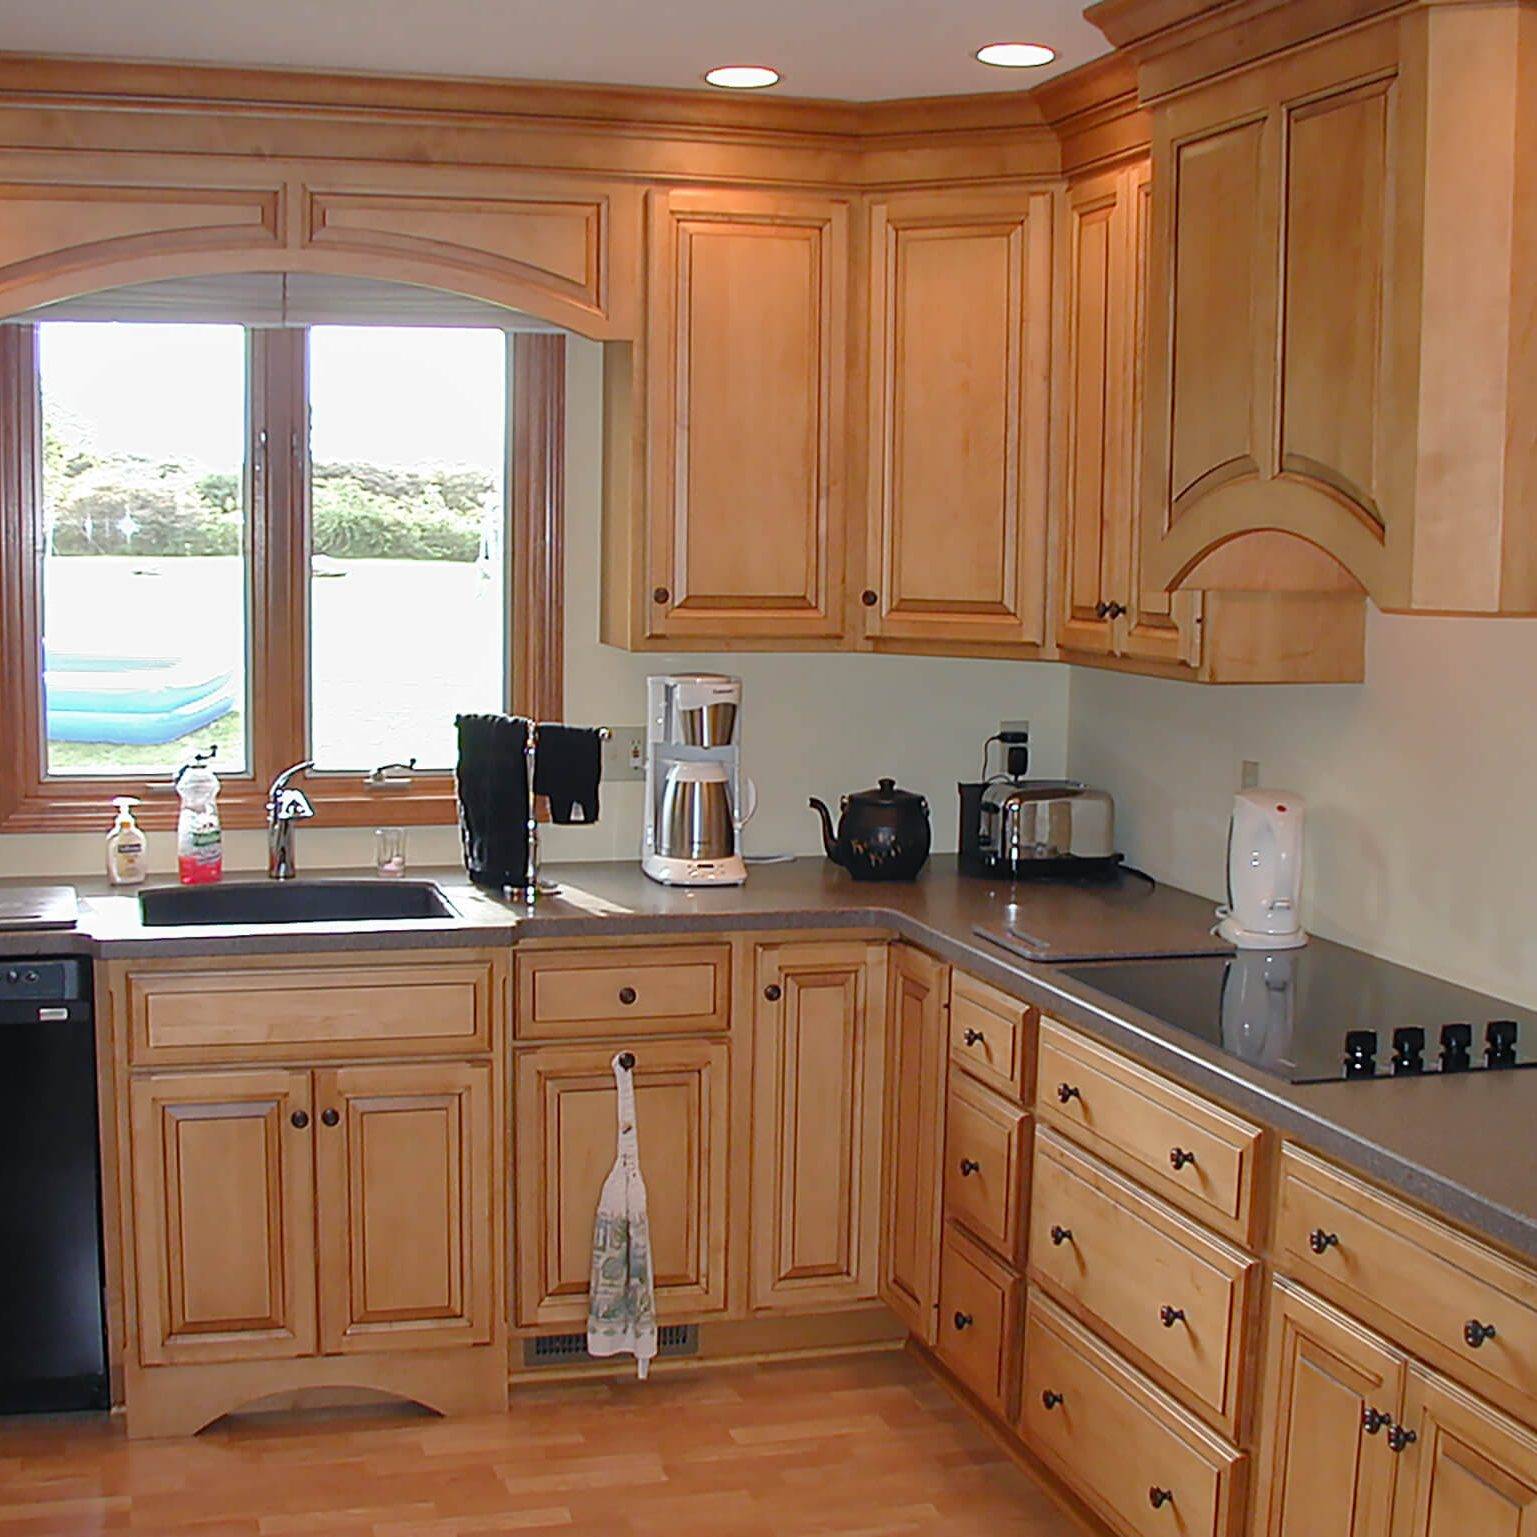 Kinetic Kitchen and Bath Our Work Gallery Photo - Kitchen remodel design 17